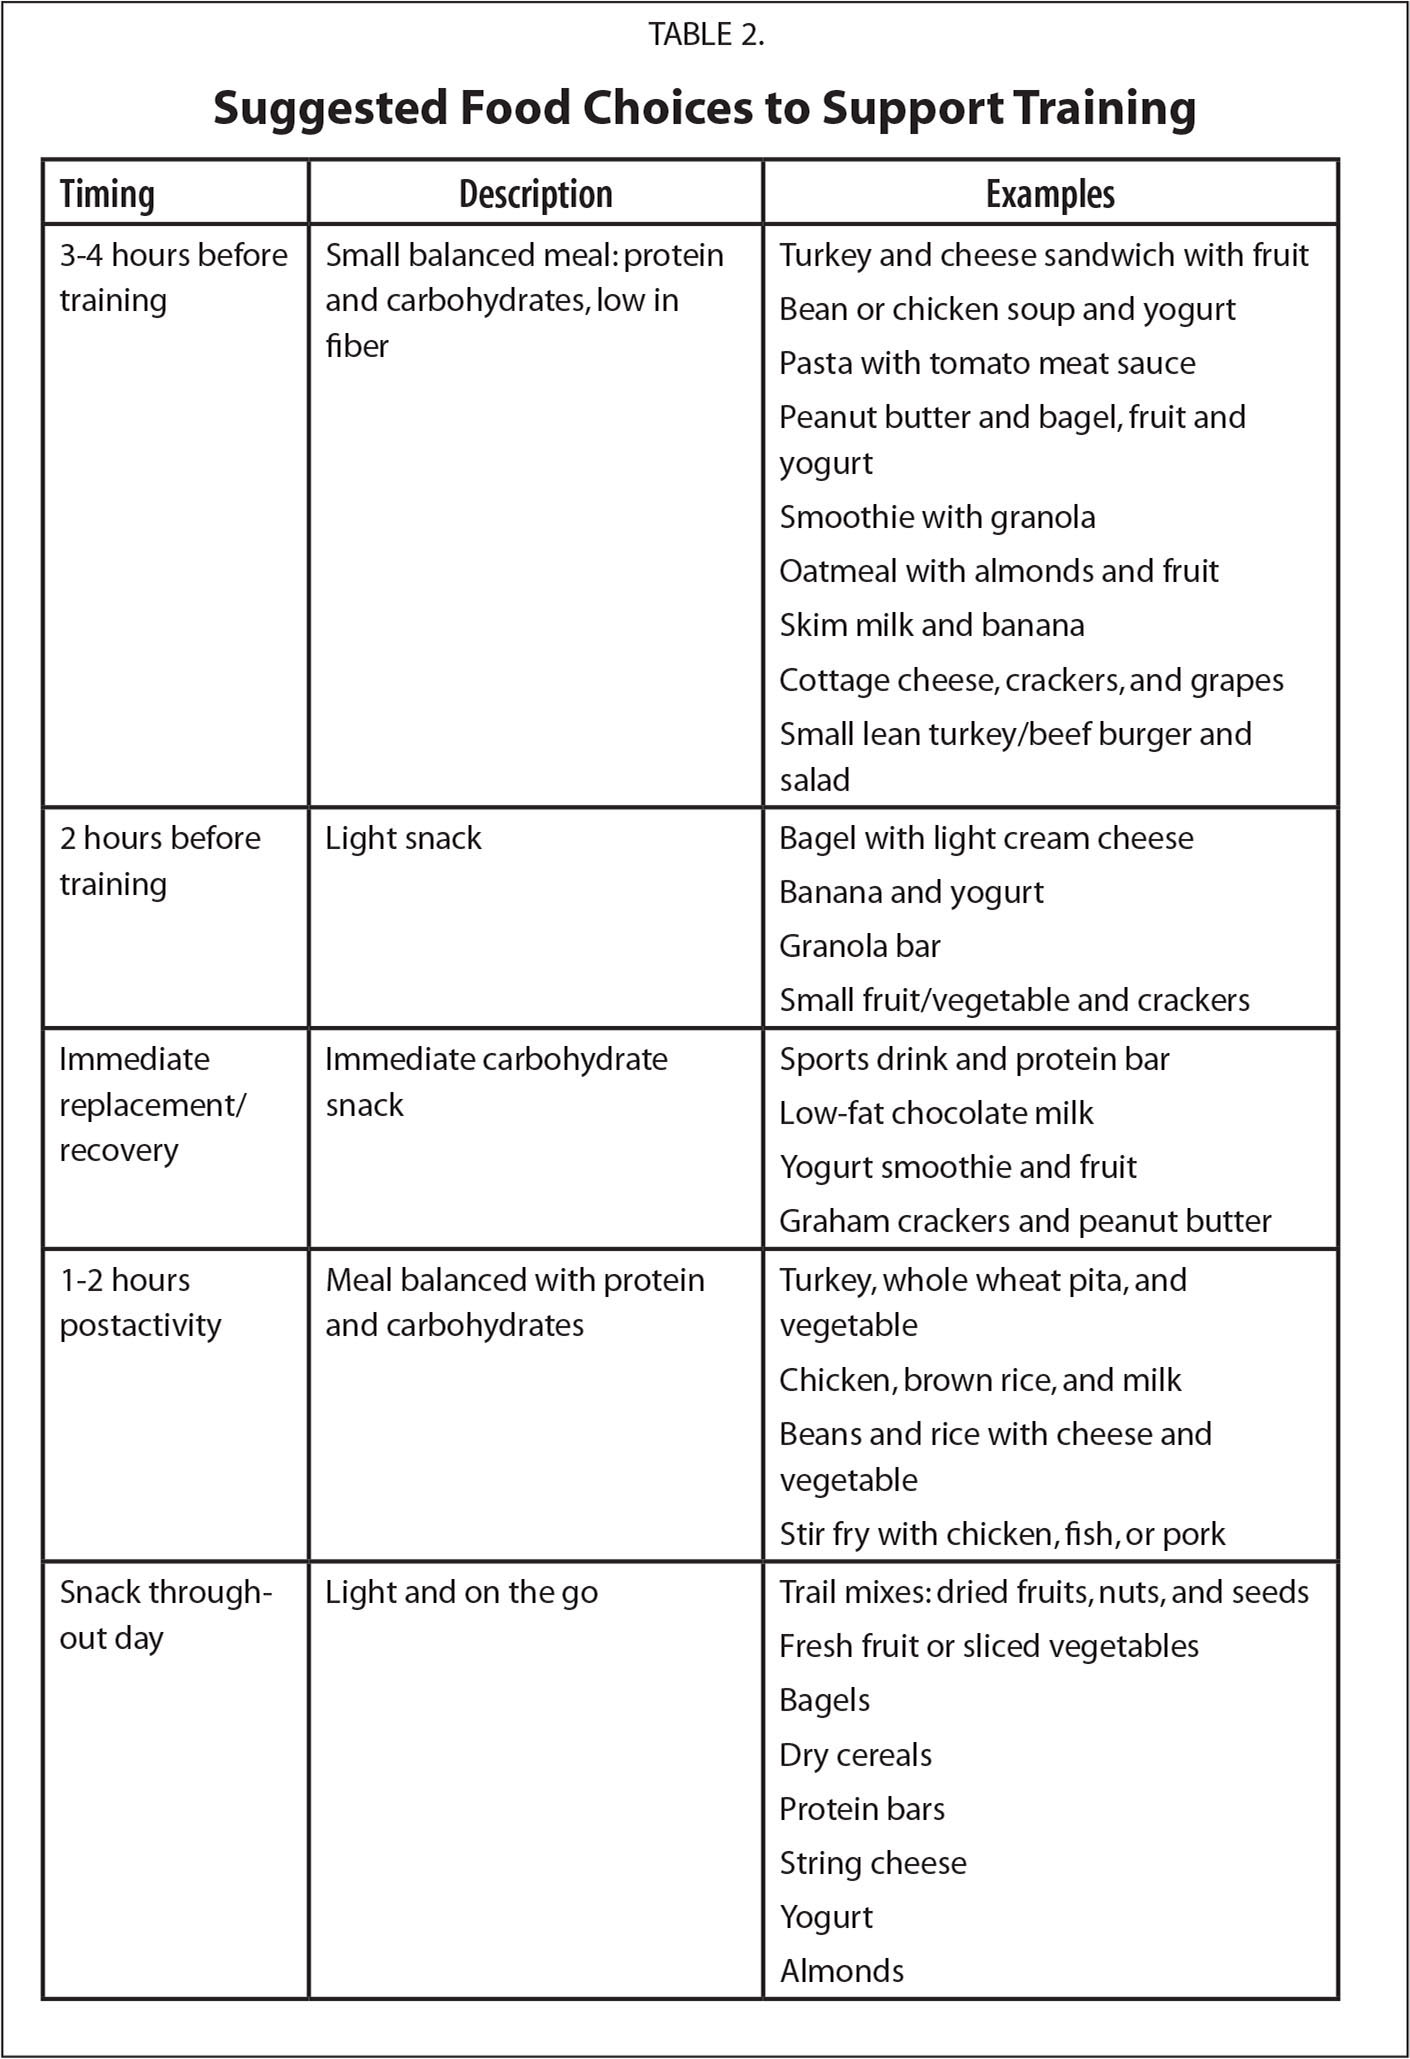 Suggested Food Choices to Support Training